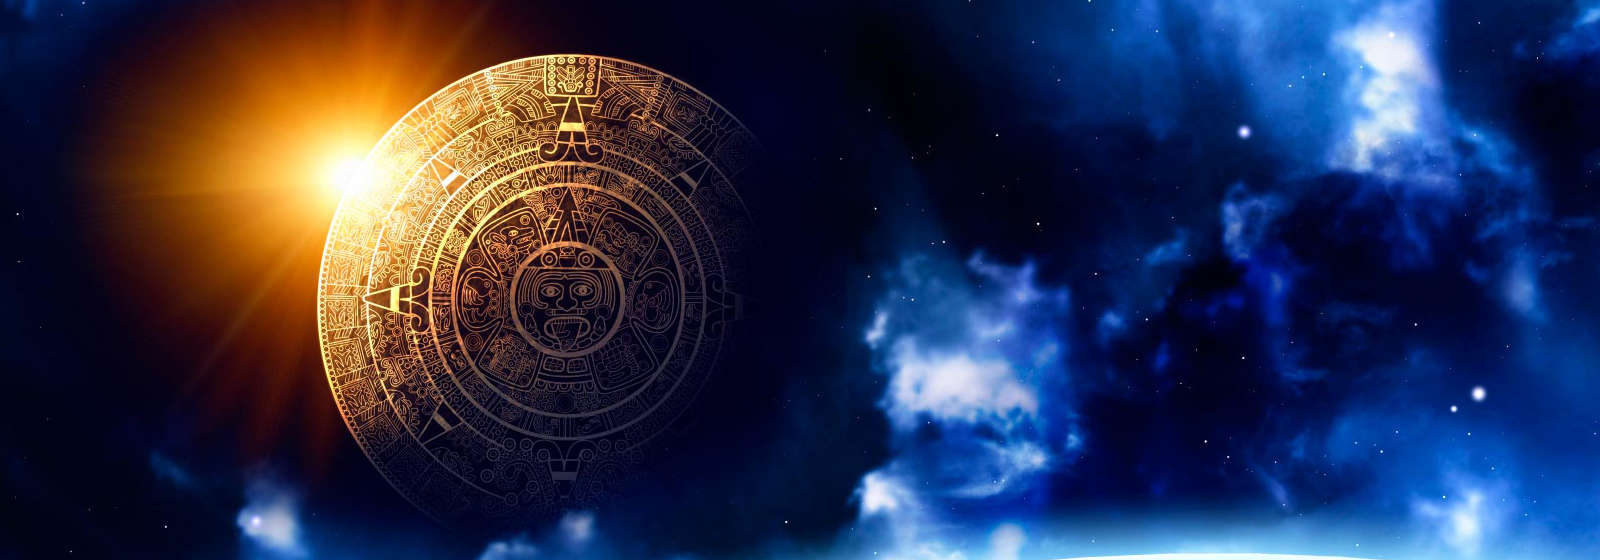 indian astrology background